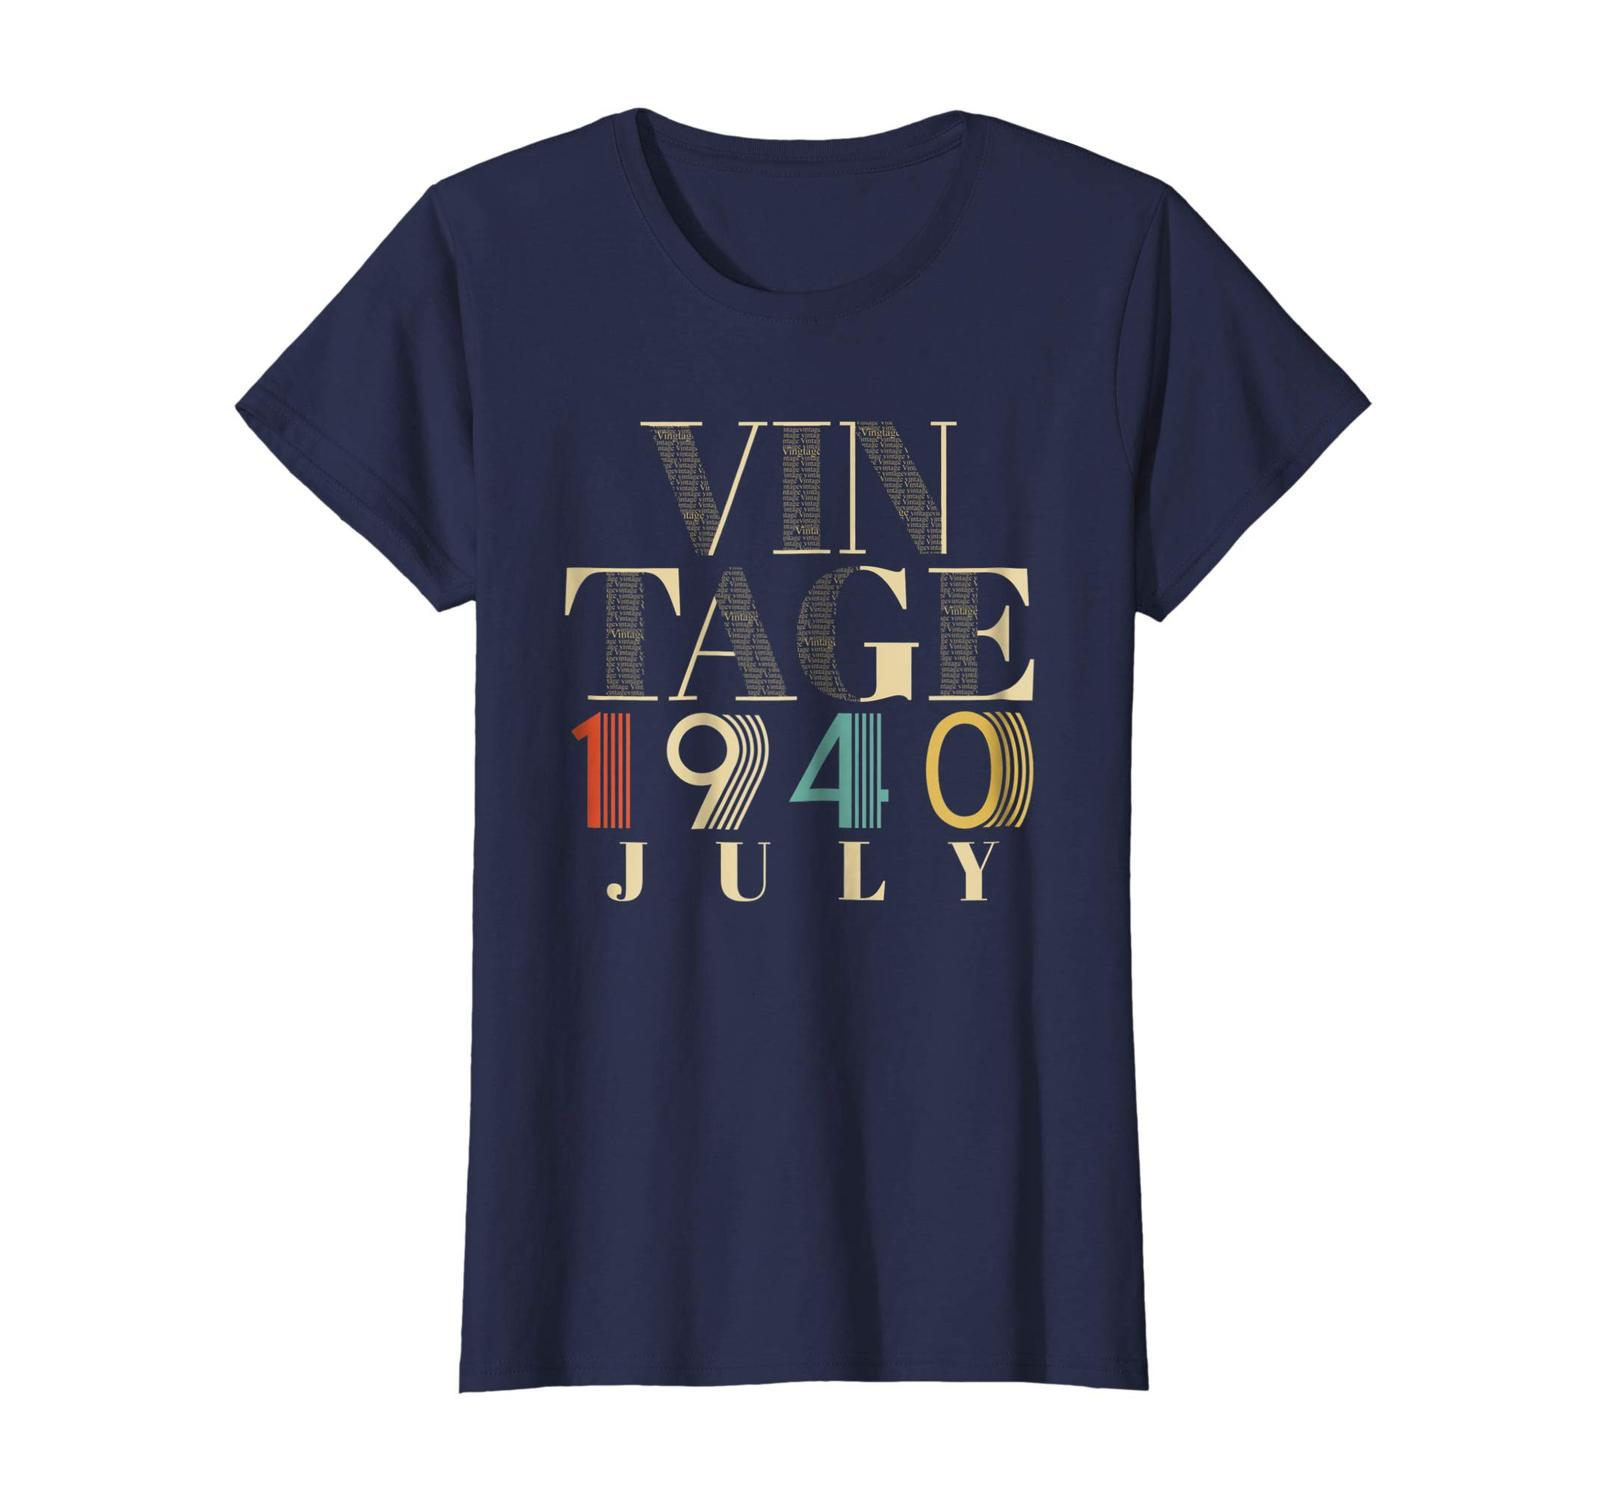 Brother Shirts - Retro Classic Vintage Born In JULY 1940 Aged 78 Years Old Wowen image 3